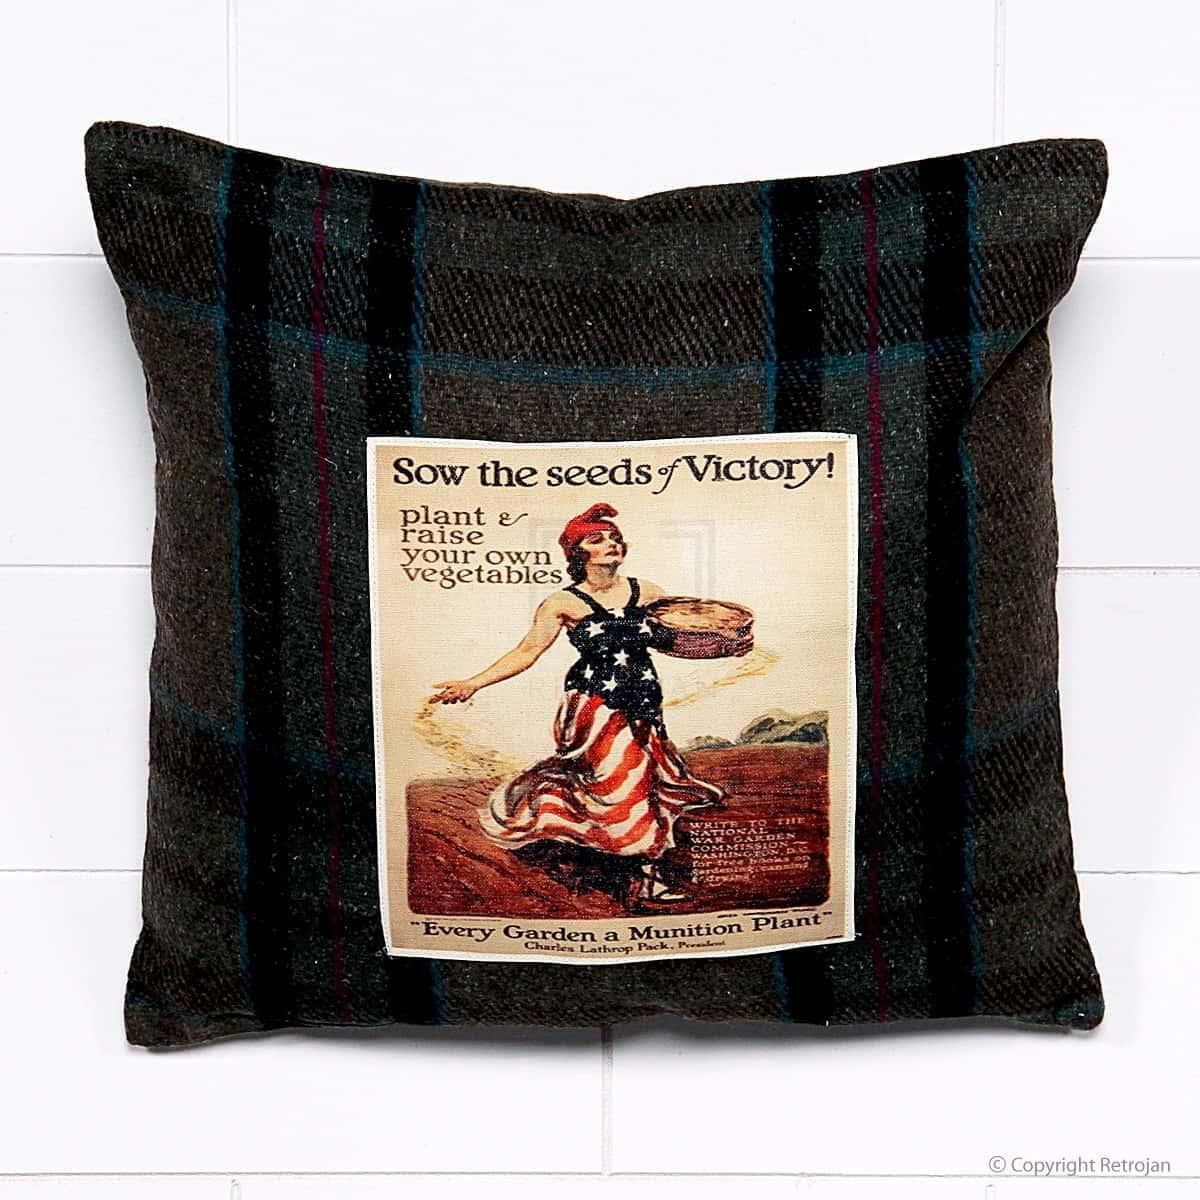 Blanket Vintage Advertisement Cushion - Sow The Seeds